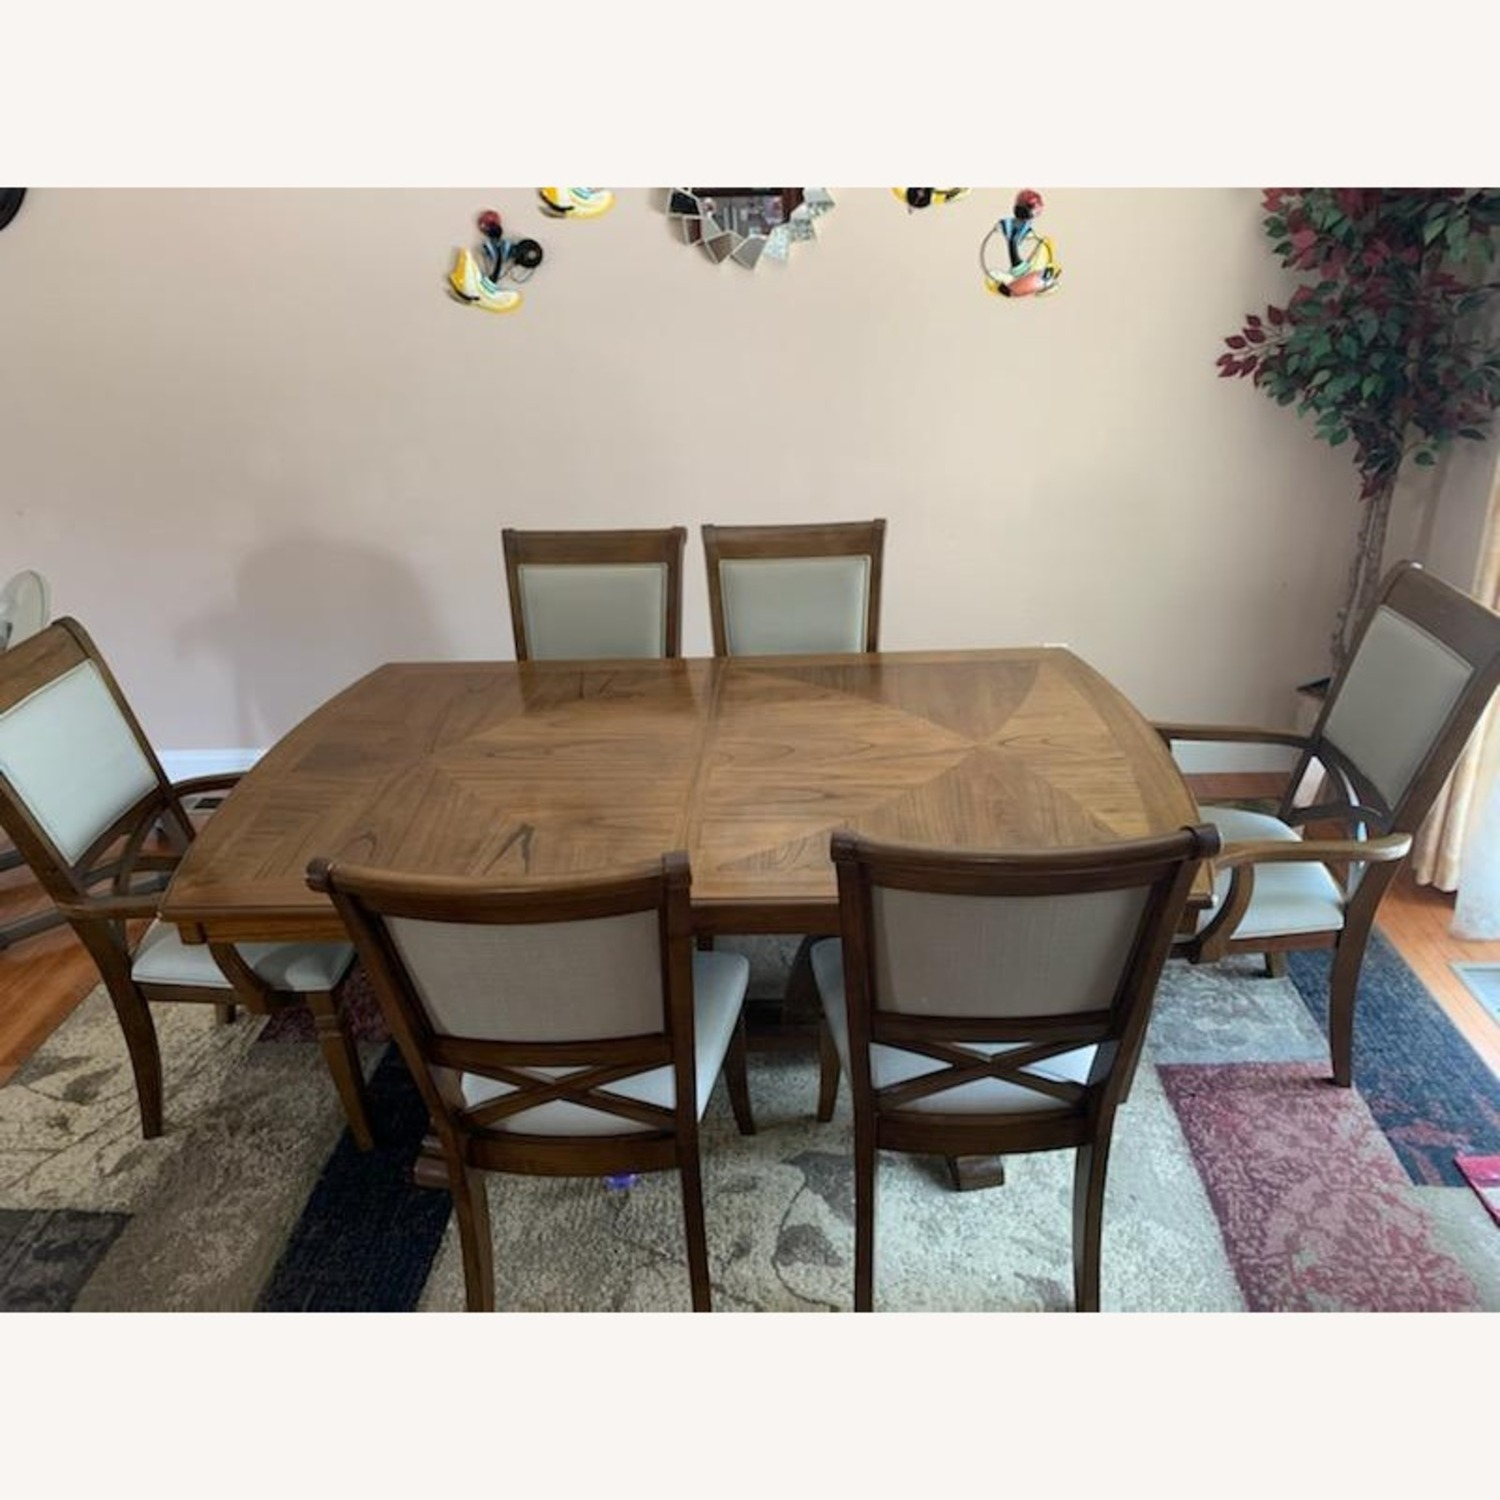 Raymour & Flanigan Dining Table set with 6 chairs - image-5